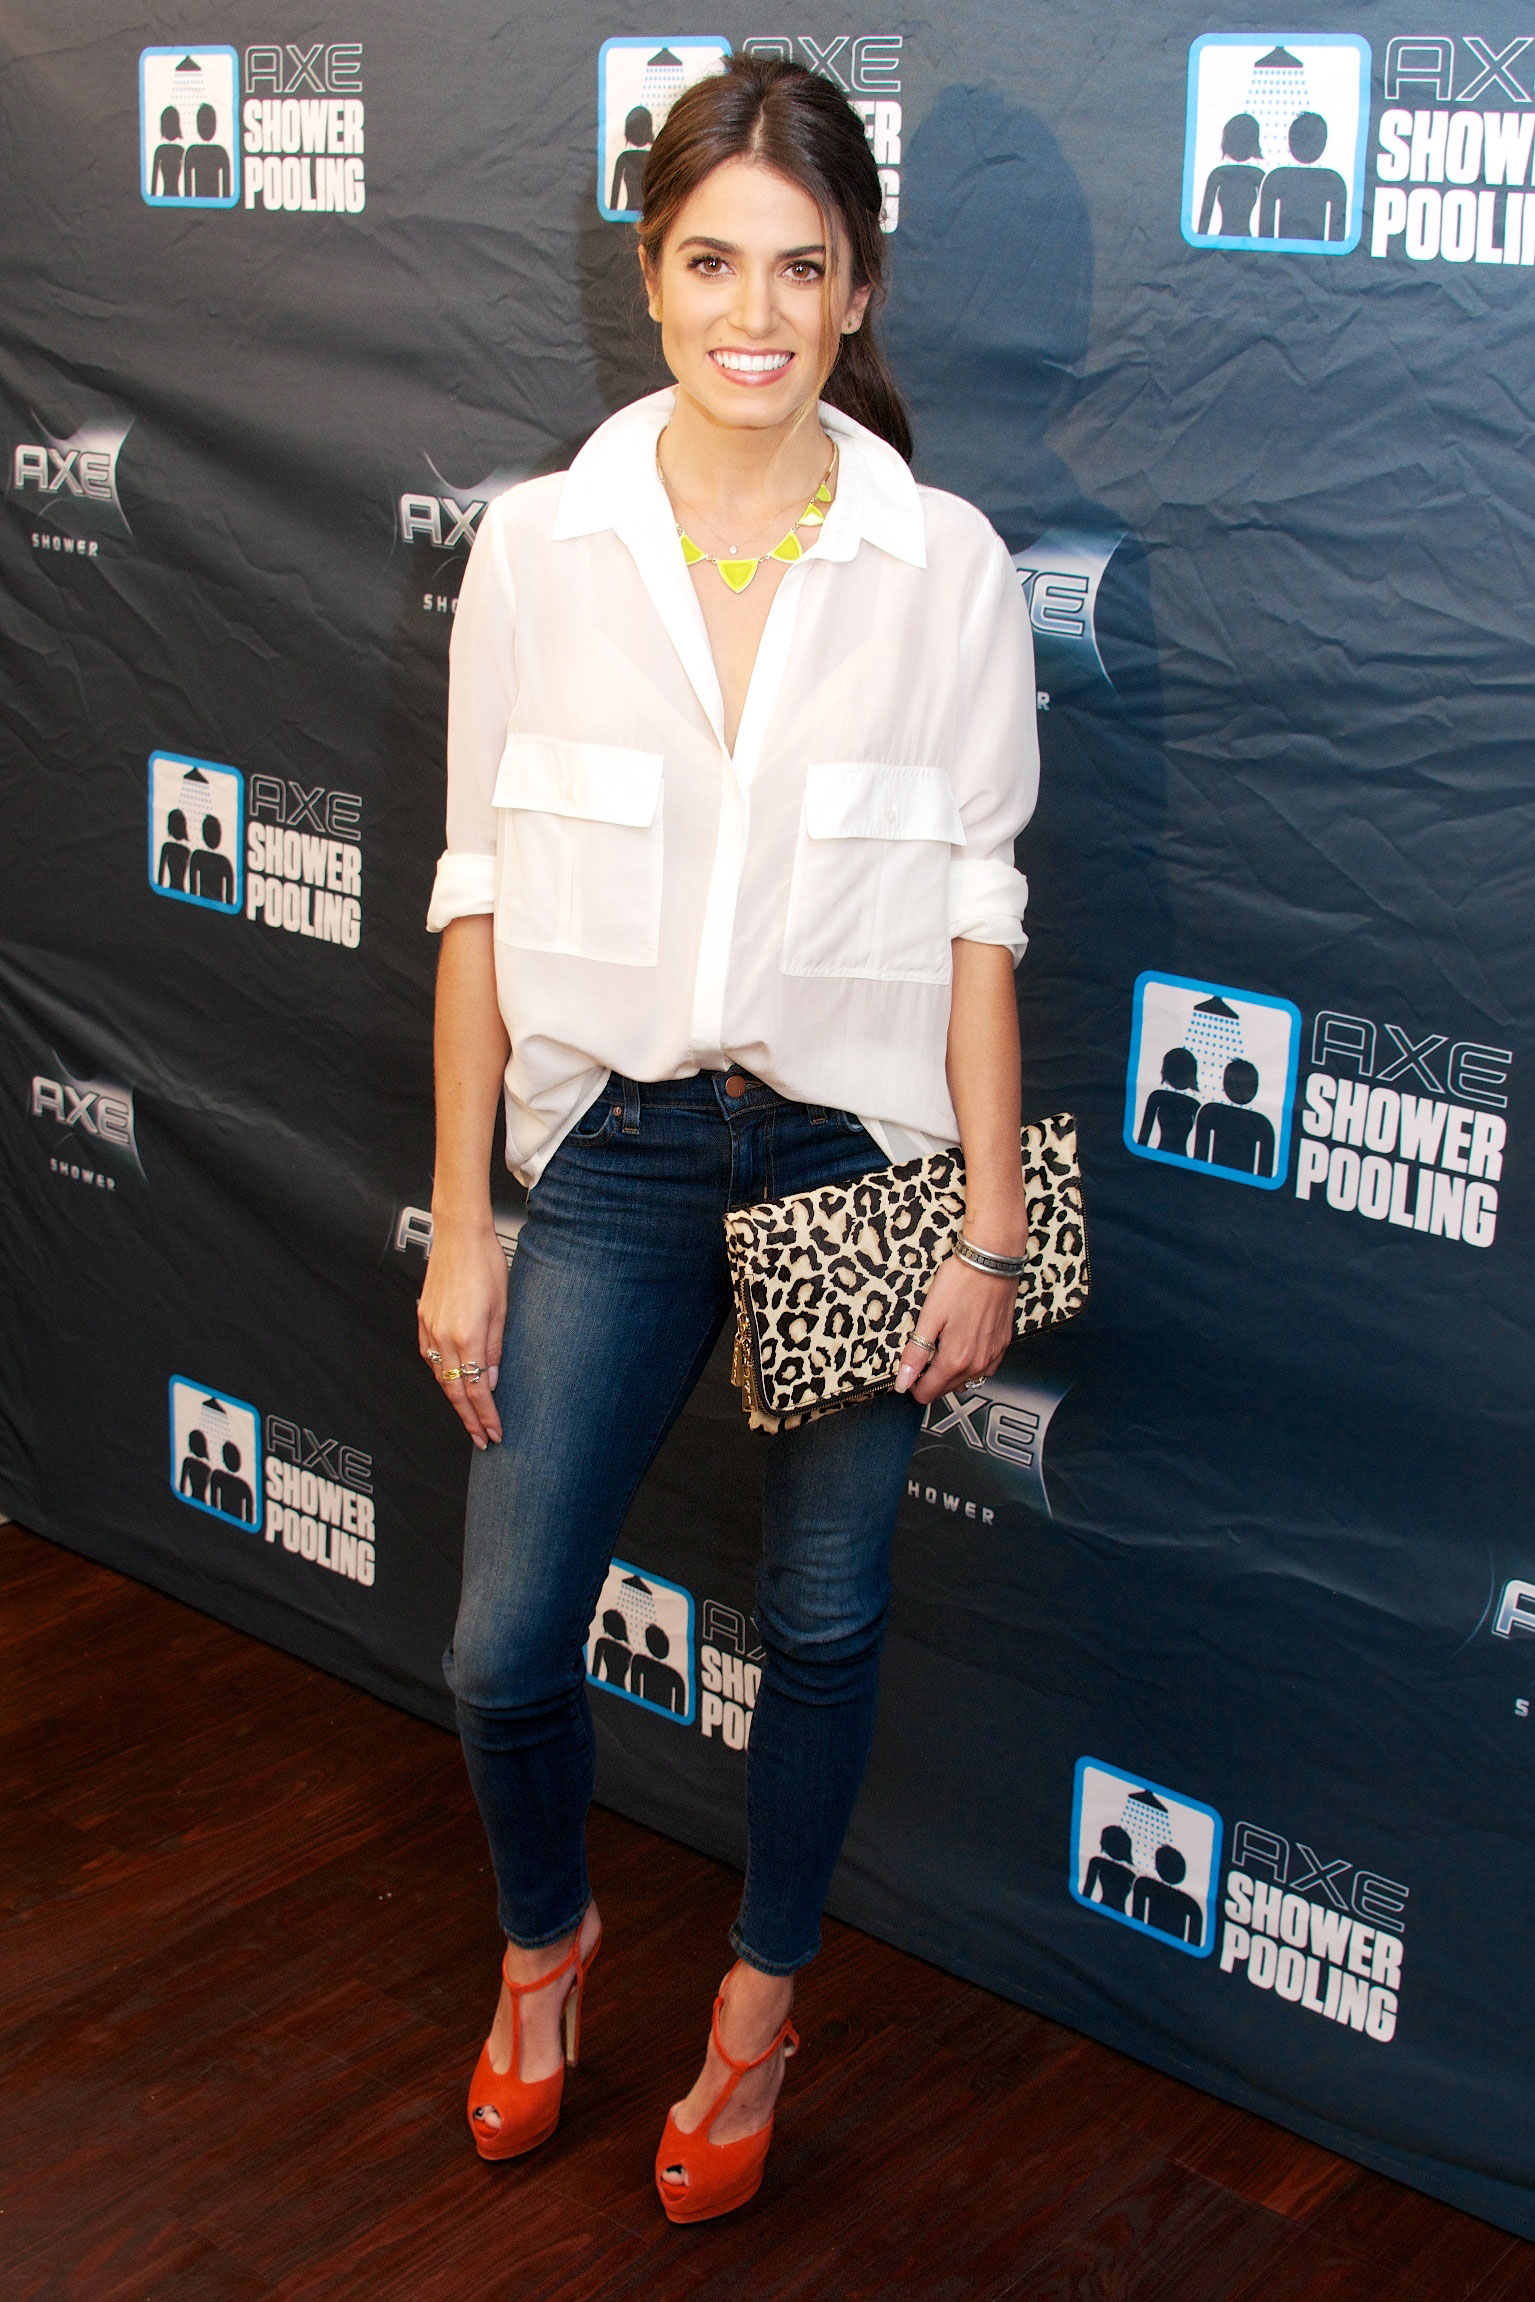 Nikki Reed celebrity look for less featuring white shirt, skinny jeans, leopard clutch, red heels